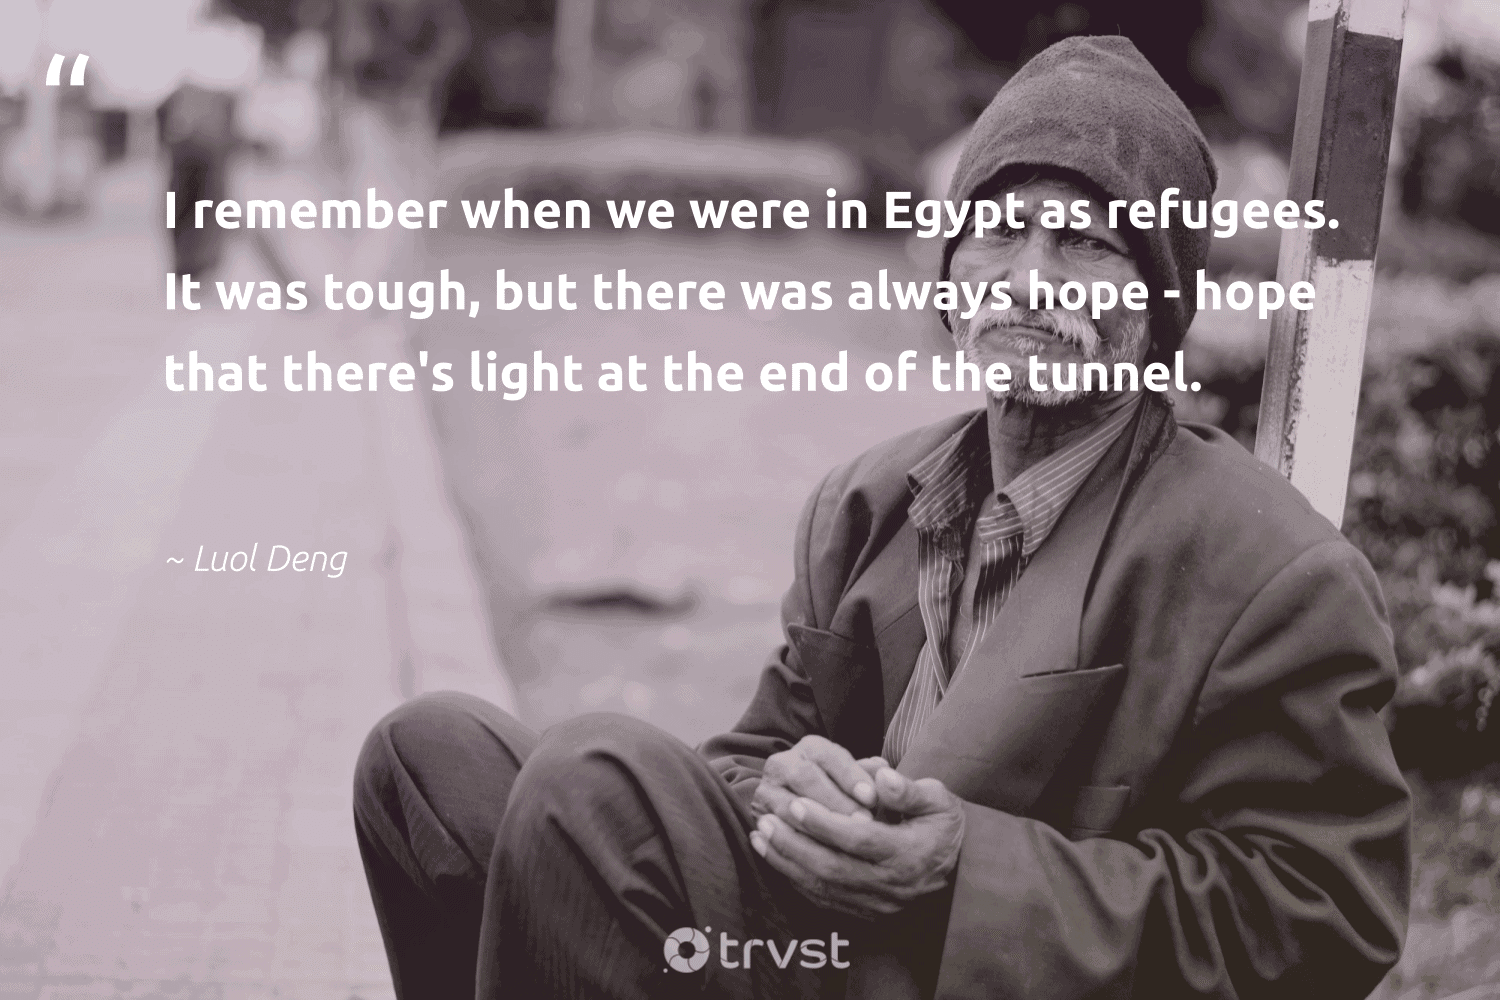 """""""I remember when we were in Egypt as refugees. It was tough, but there was always hope - hope that there's light at the end of the tunnel.""""  - Luol Deng #trvst #quotes #refugees #hope #refugee #sustainablefutures #inclusion #dotherightthing #syria #makeadifference #equalrights #ecoconscious"""